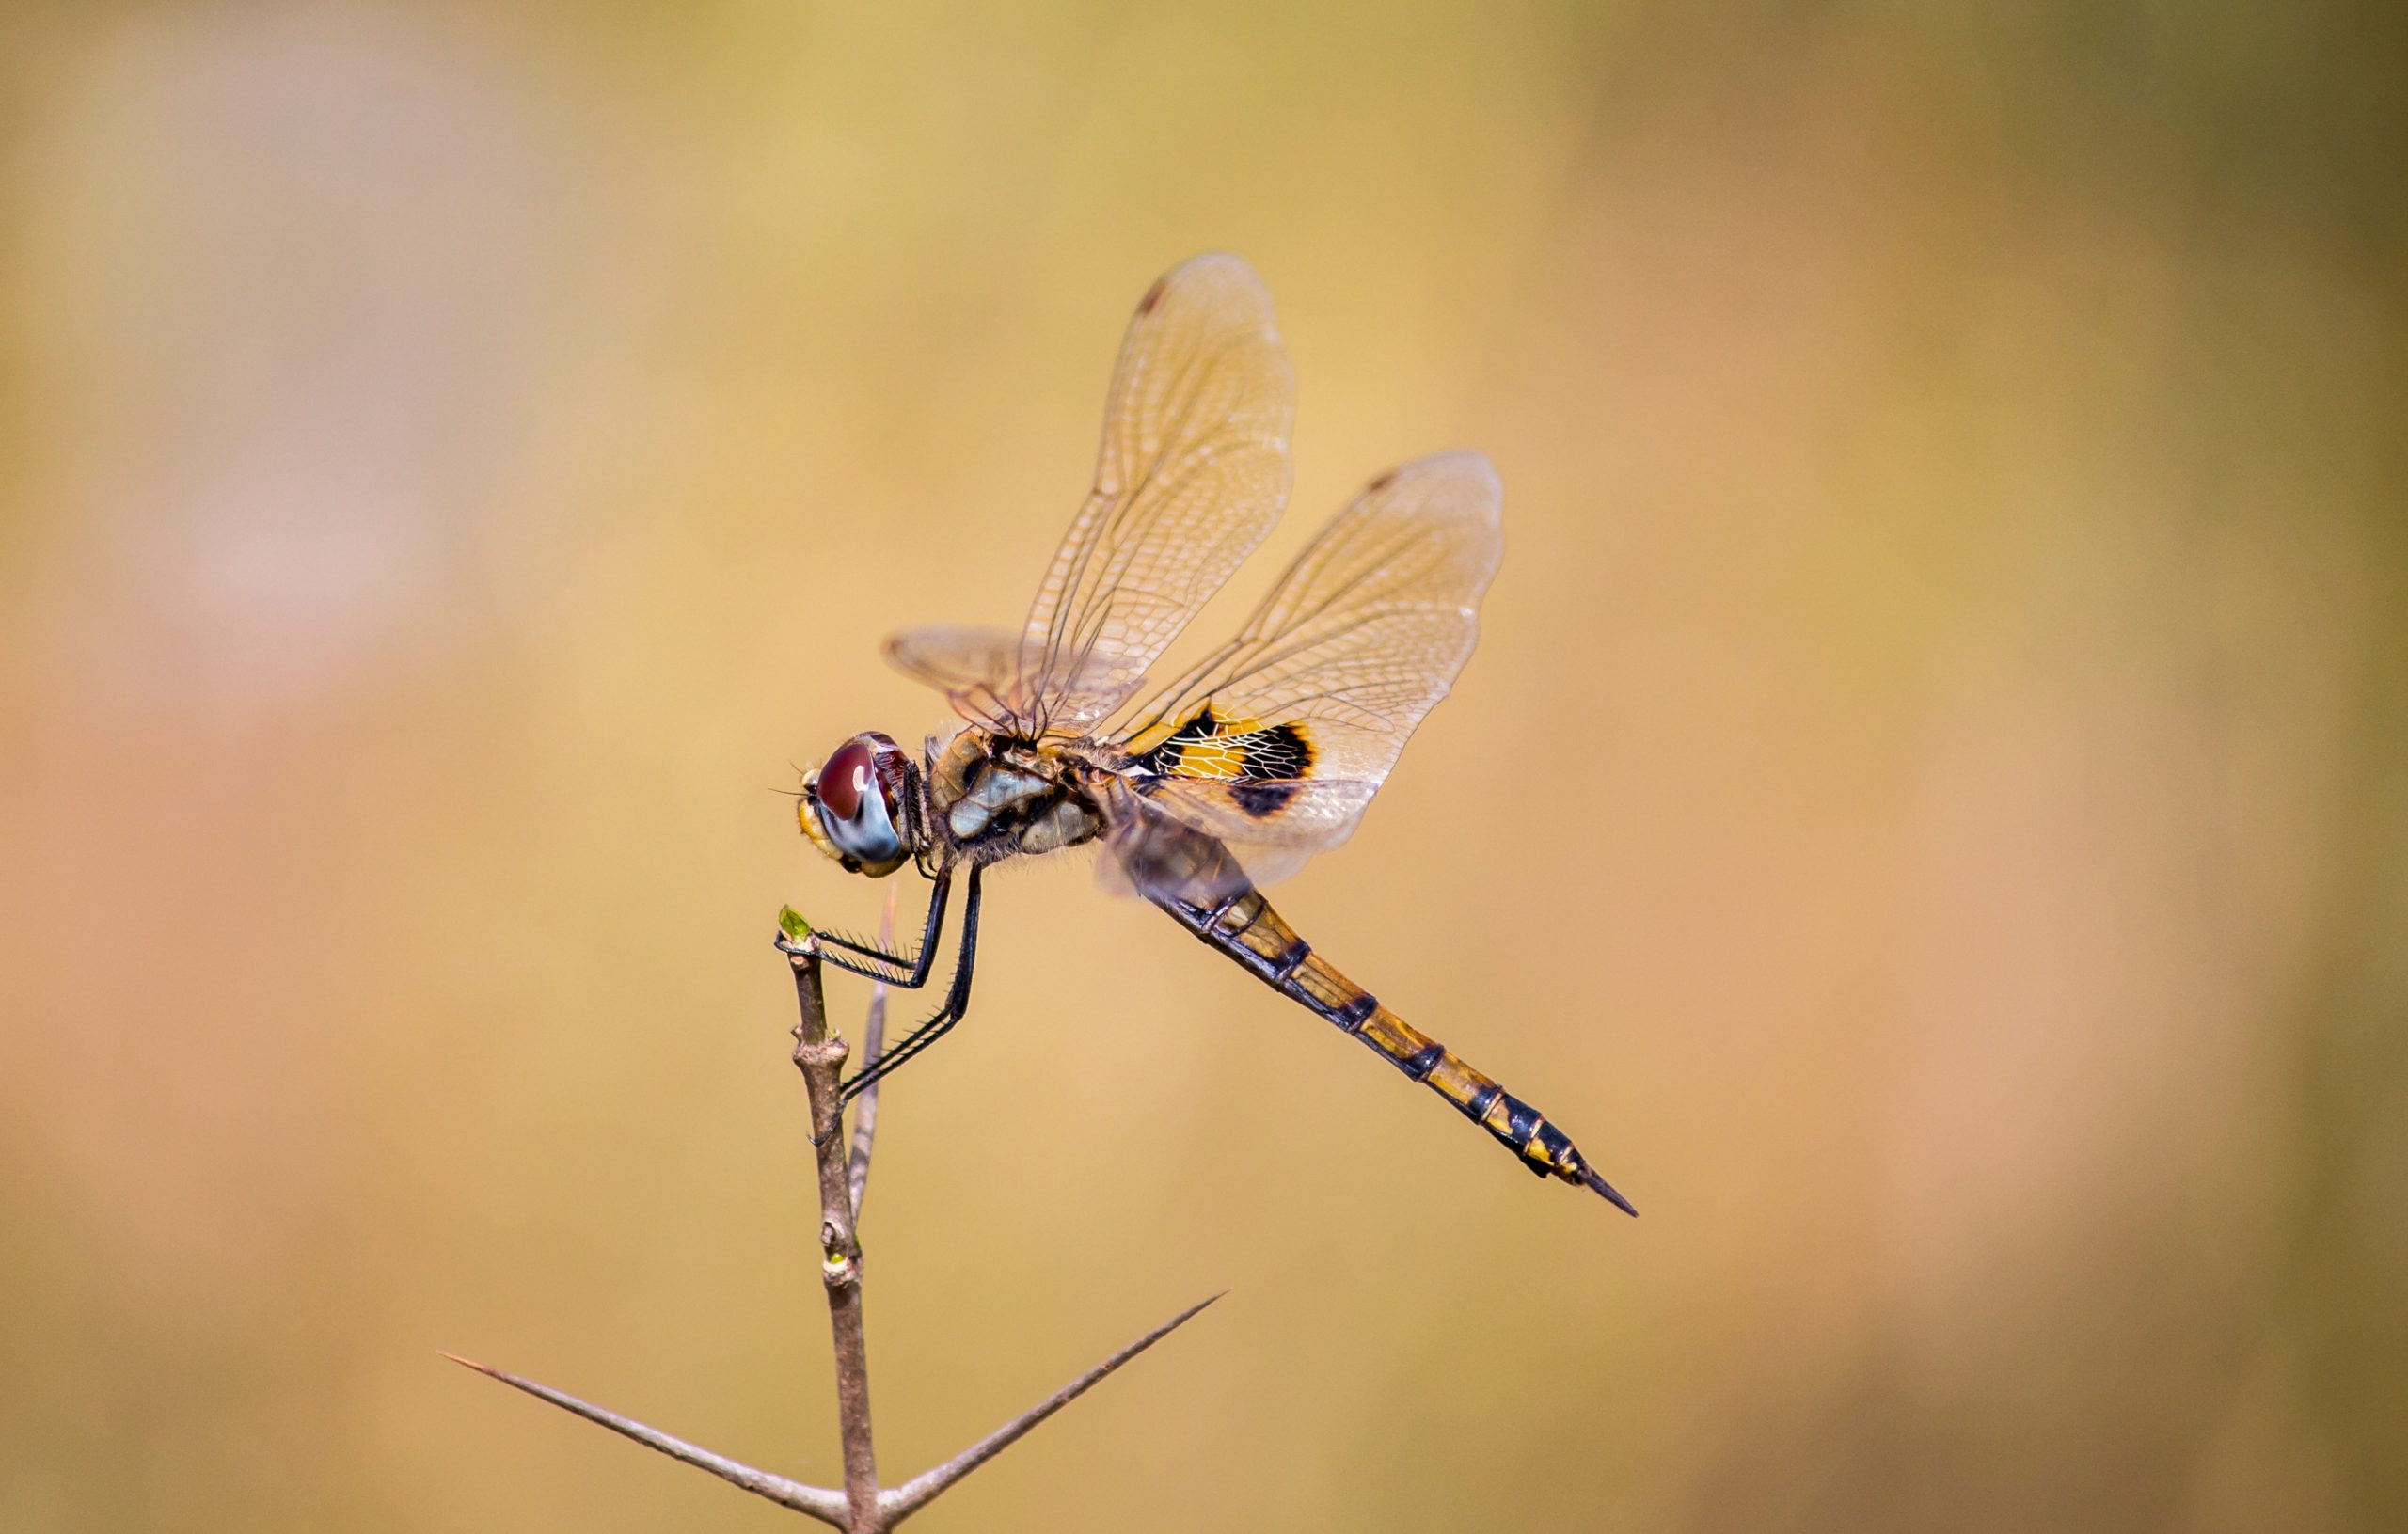 dragonfly on a twig